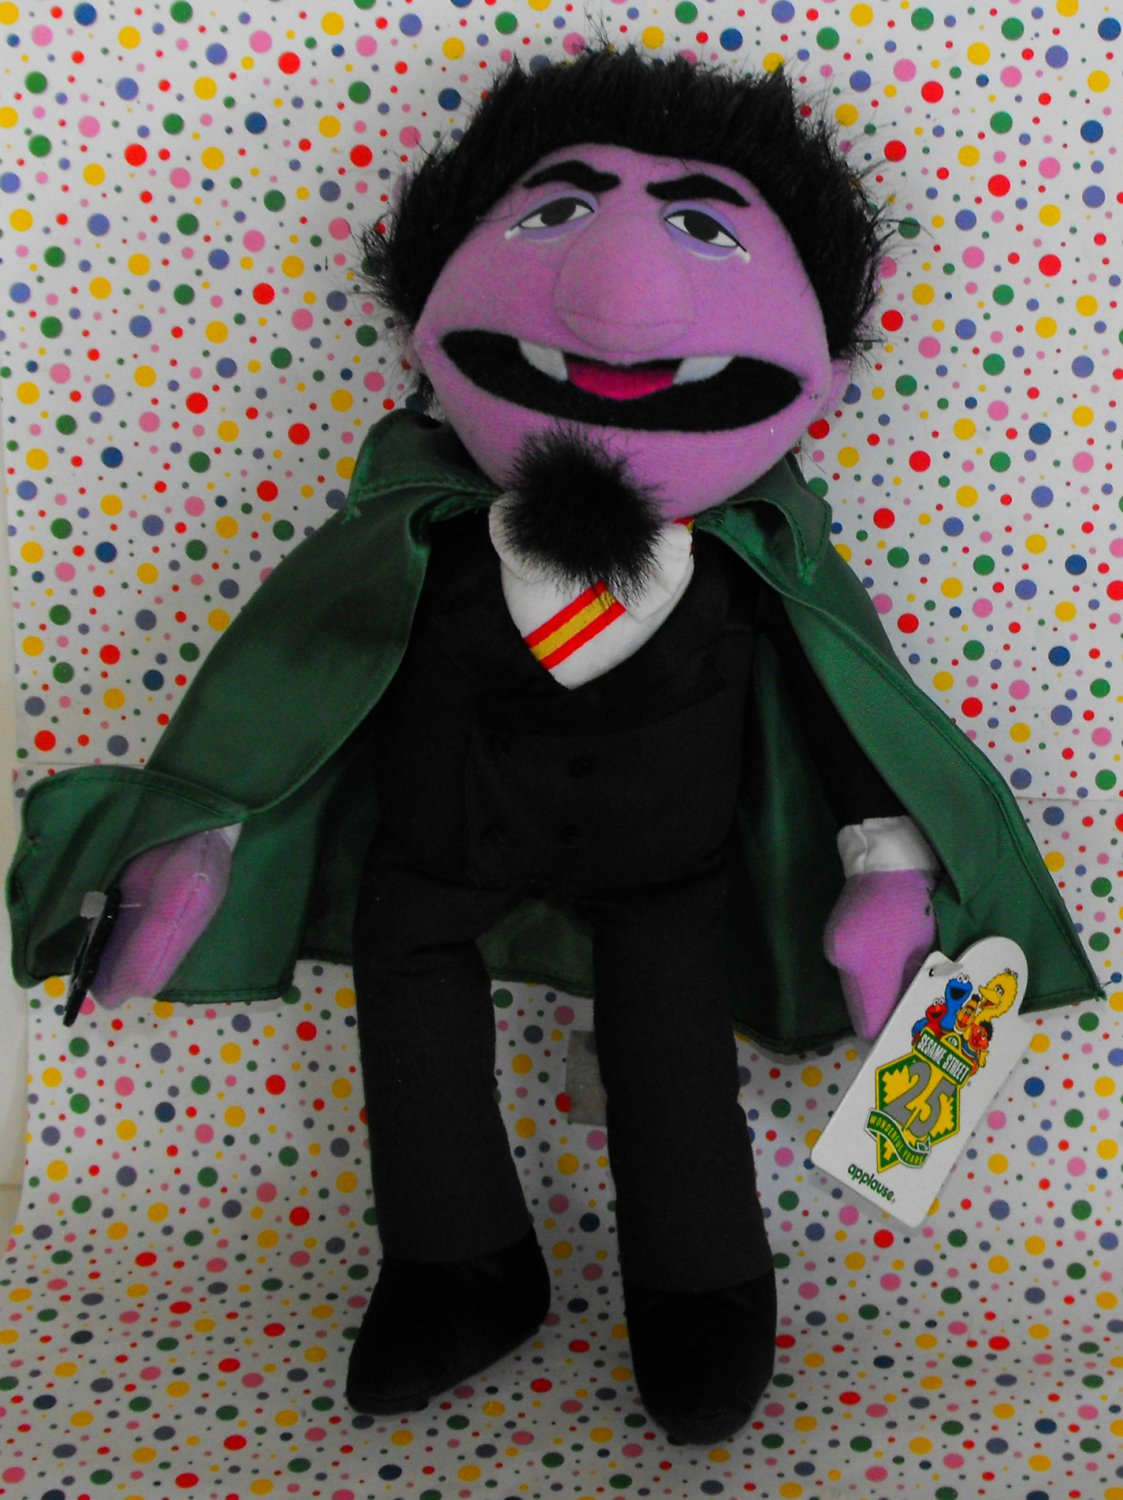 rc car stores with 6 13soldsesame Street The Count Plush on Fisher Price Backyardigans Bobblin Dune besides Magic Tracks Race Track With 2 Cars 360PCS 222672264705 as well 443112050810543577 additionally 32736277853 also 32318229377.